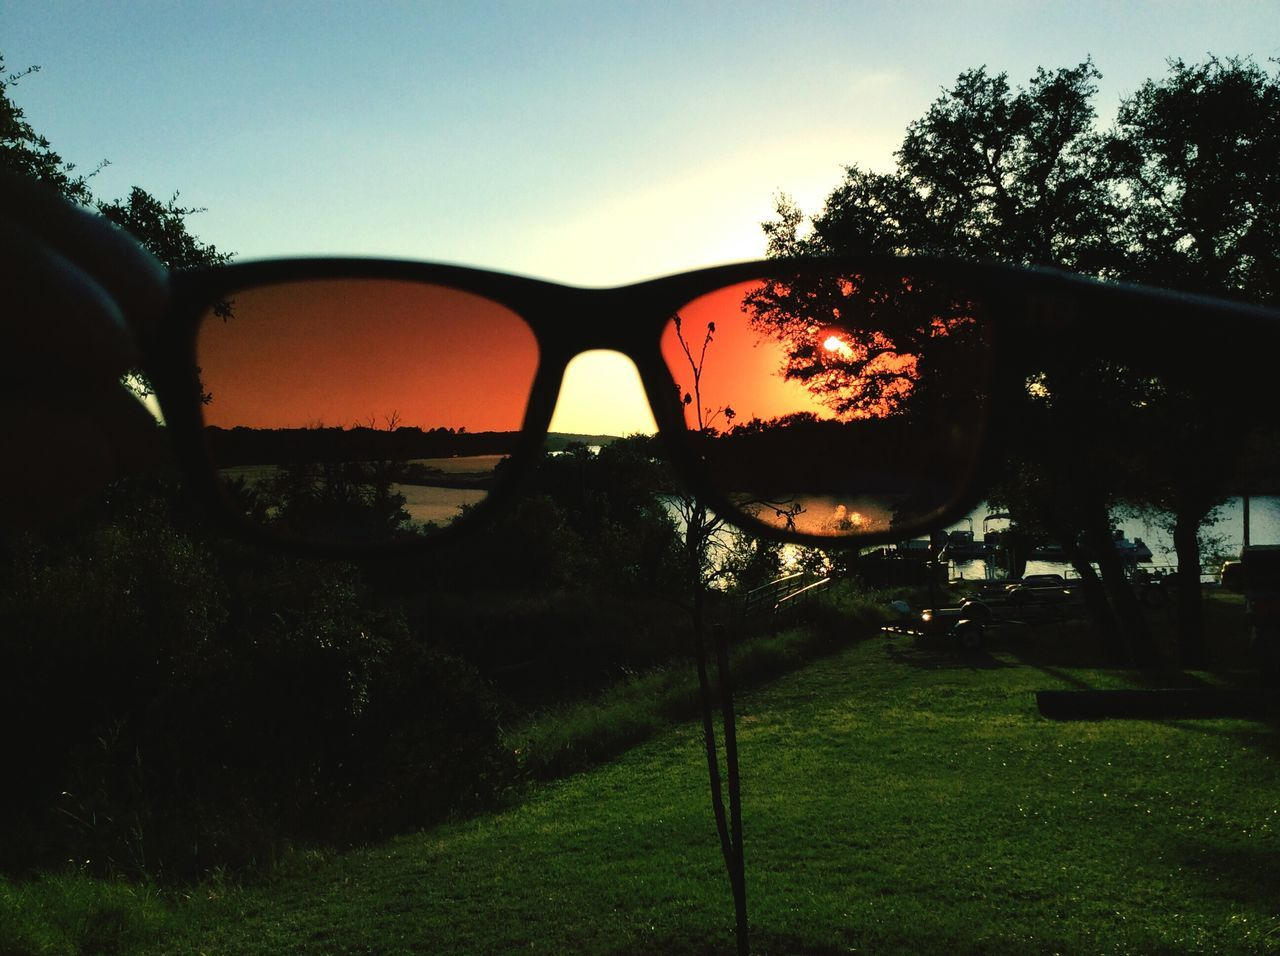 New Perspective Tenslife Sunset Tree Car Sky Silhouette Outdoors Nature Grass Land Vehicle No People Close-up Side-view Mirror Golf Course Day Sunglasses Reflection Tenslife